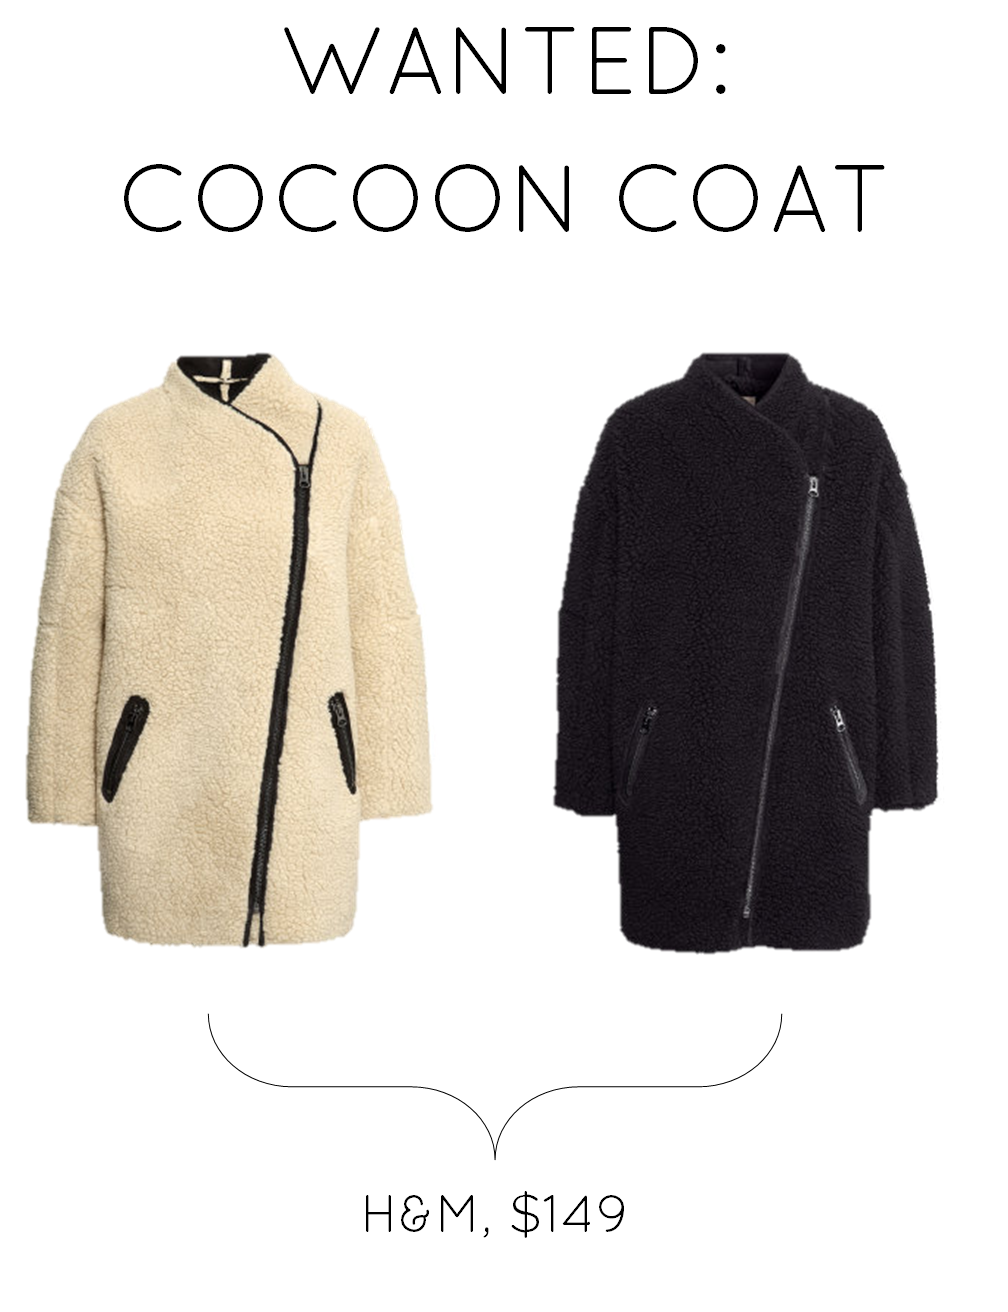 wanted_cocooncoat